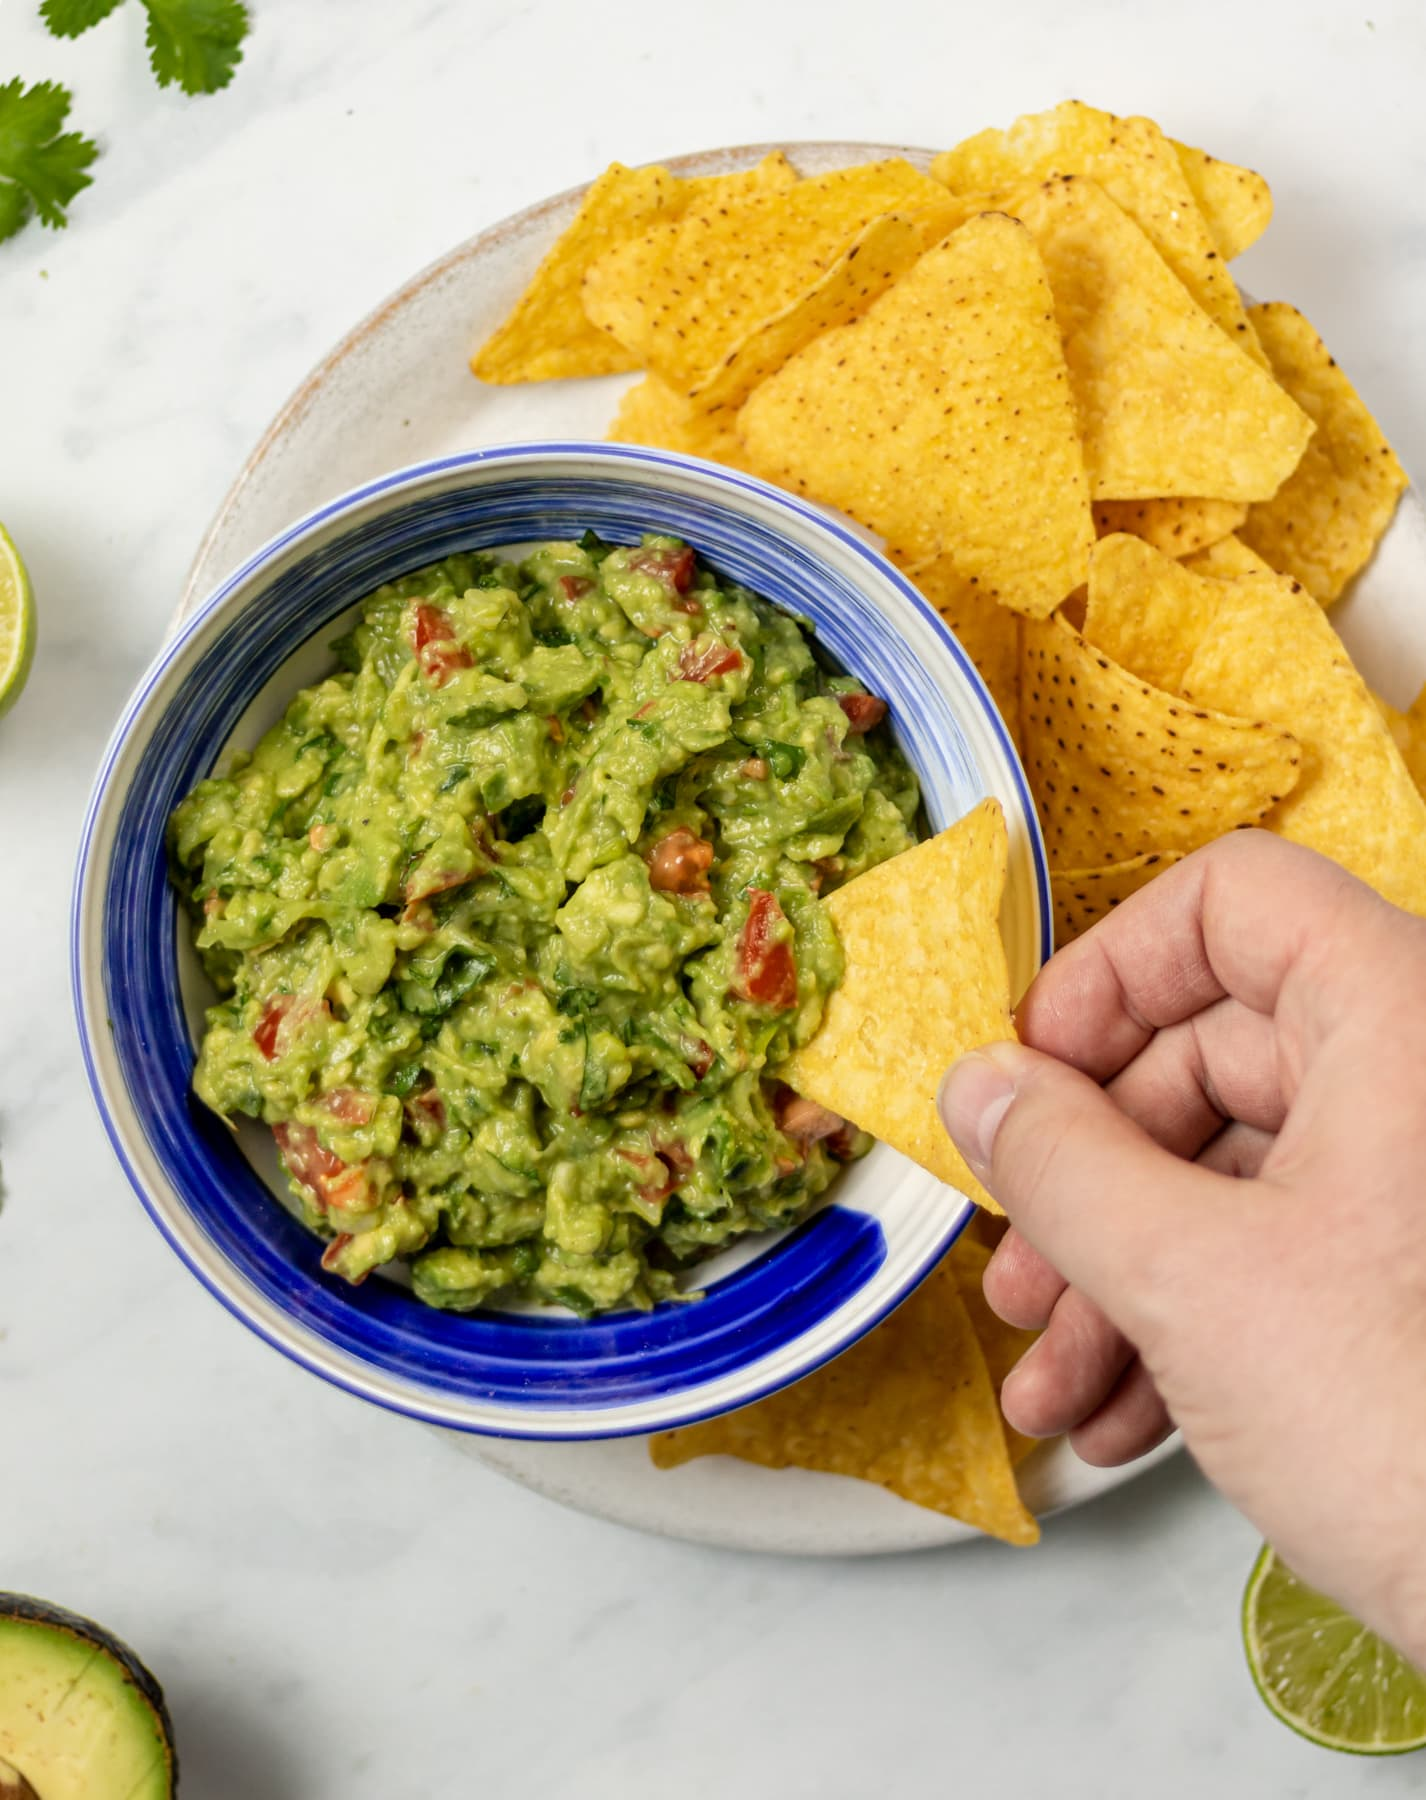 Easy Homemade Guacamole The Last Food Blog